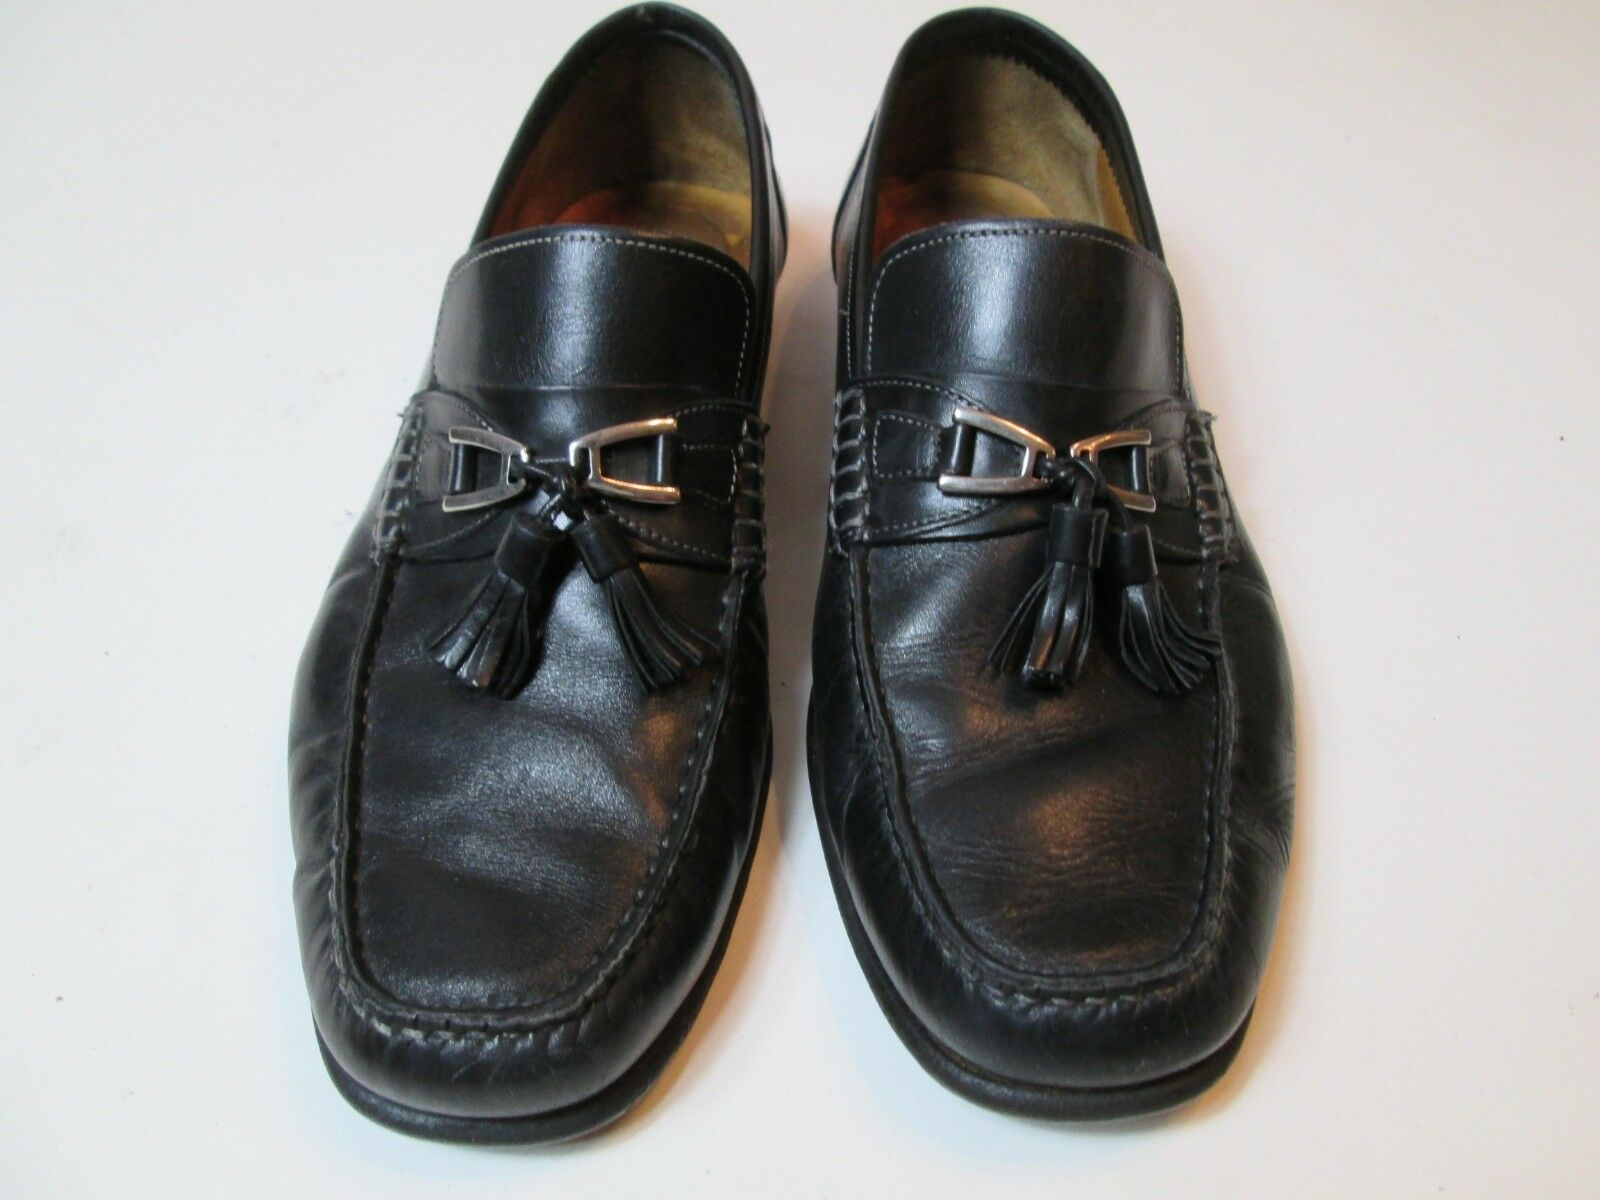 Santoni Men Loafers Size 9 Horsebit Tassel Black  R2